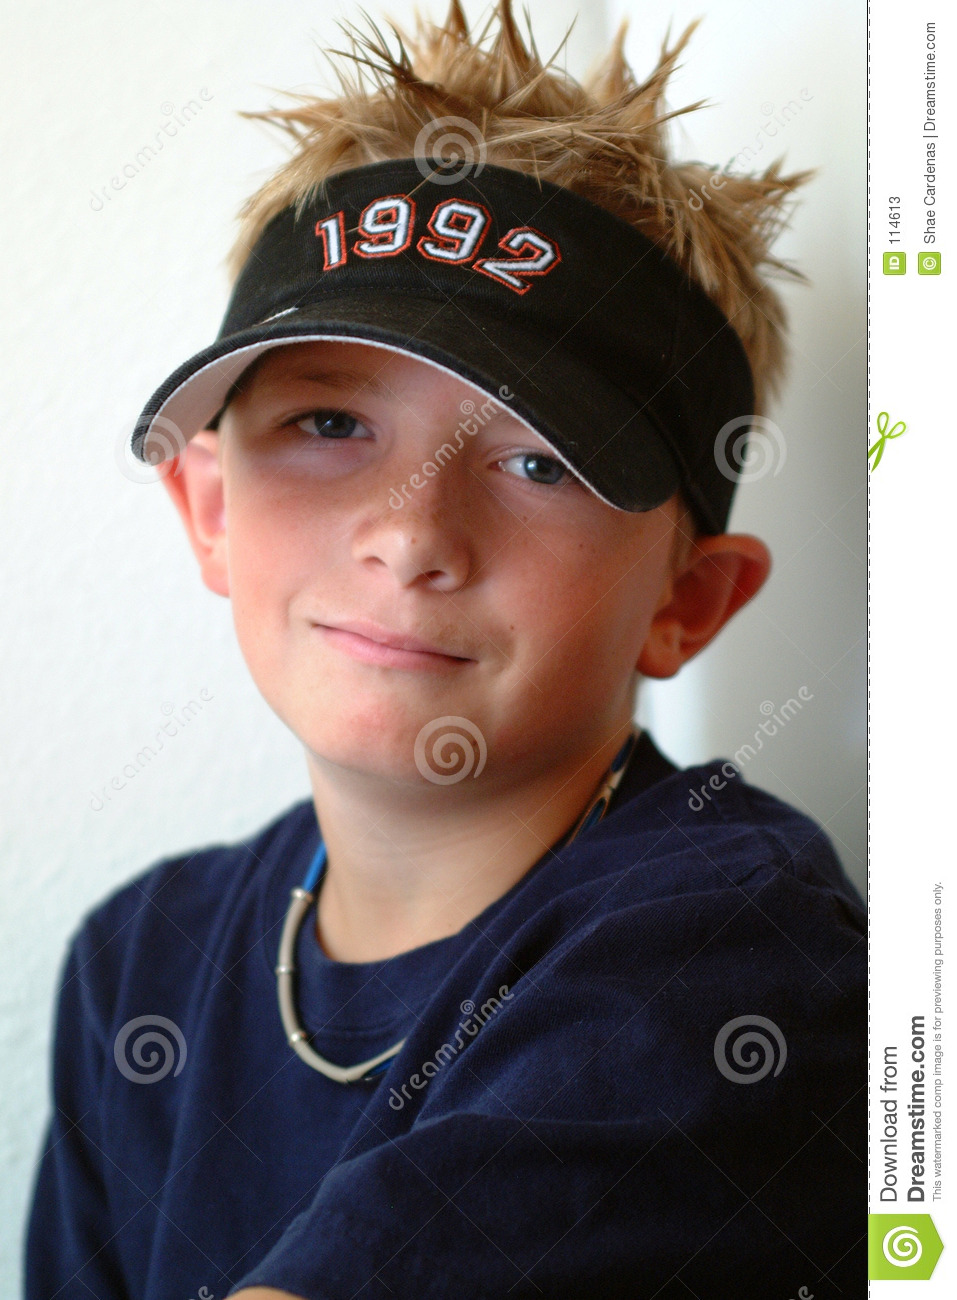 Preteen boy with spiked blond hair.